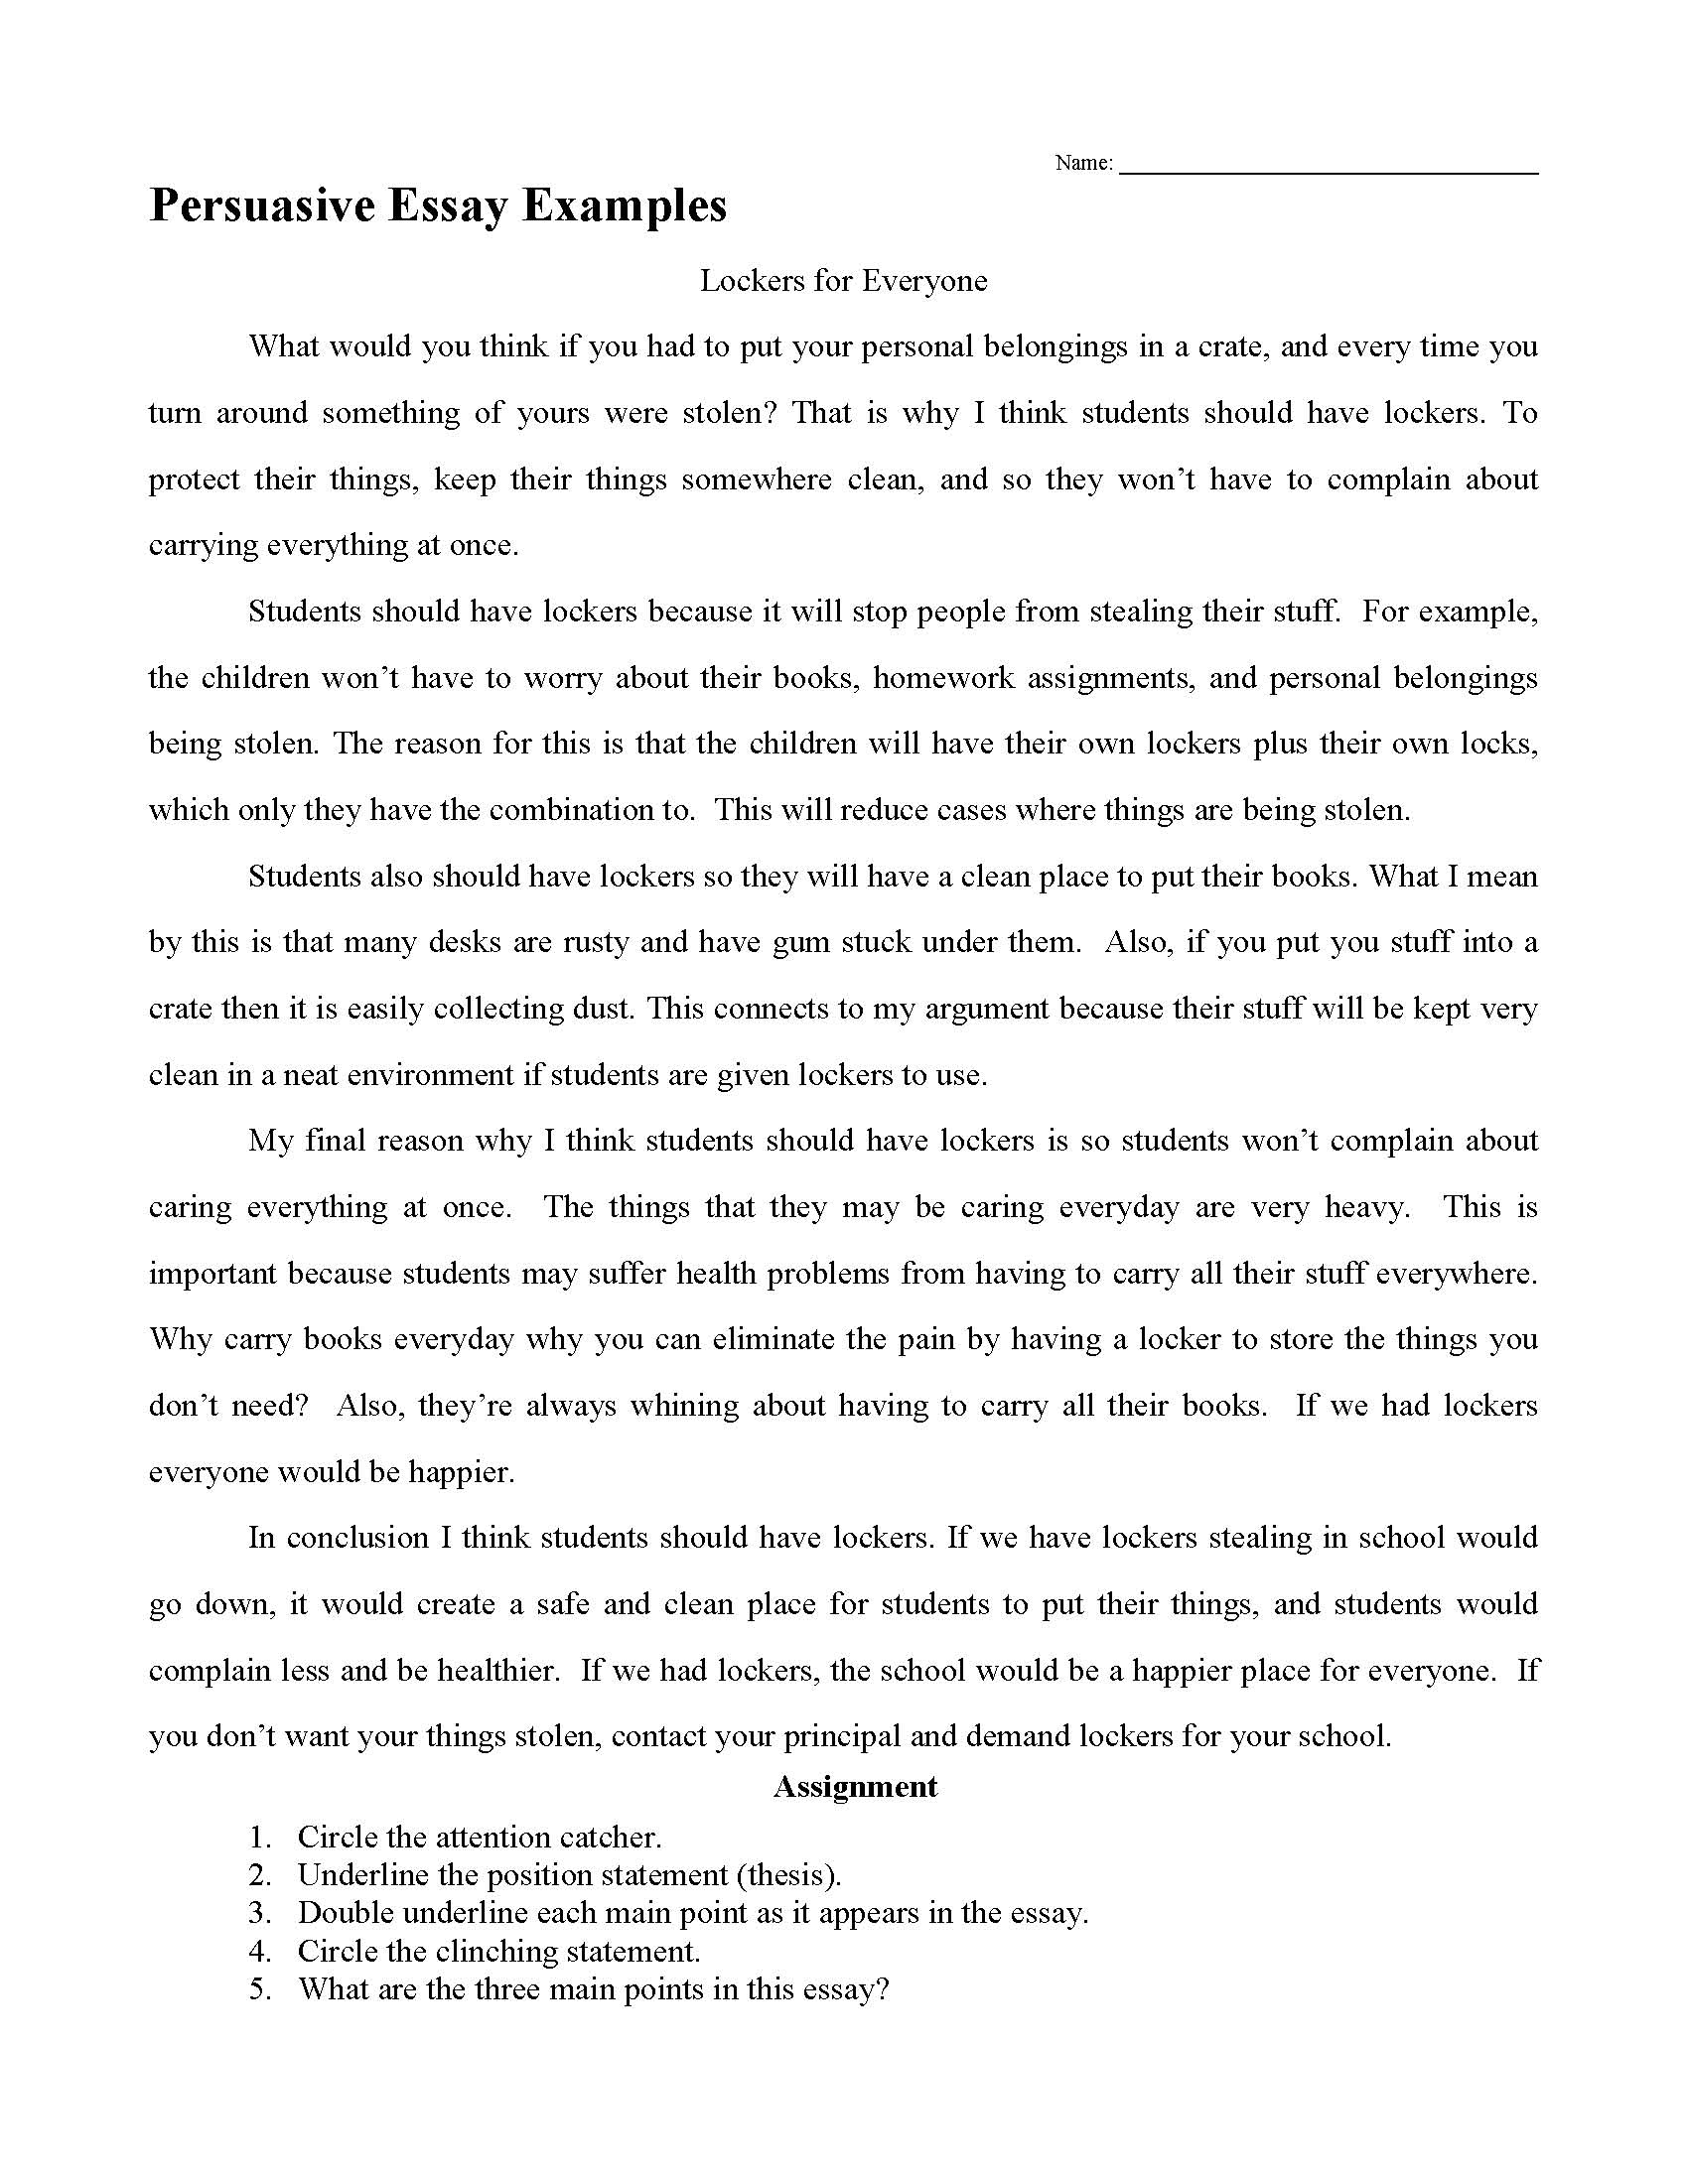 014 Research Paper Persuasive Essay Examples Introduction Of Awesome A Paragraph For Apa Full